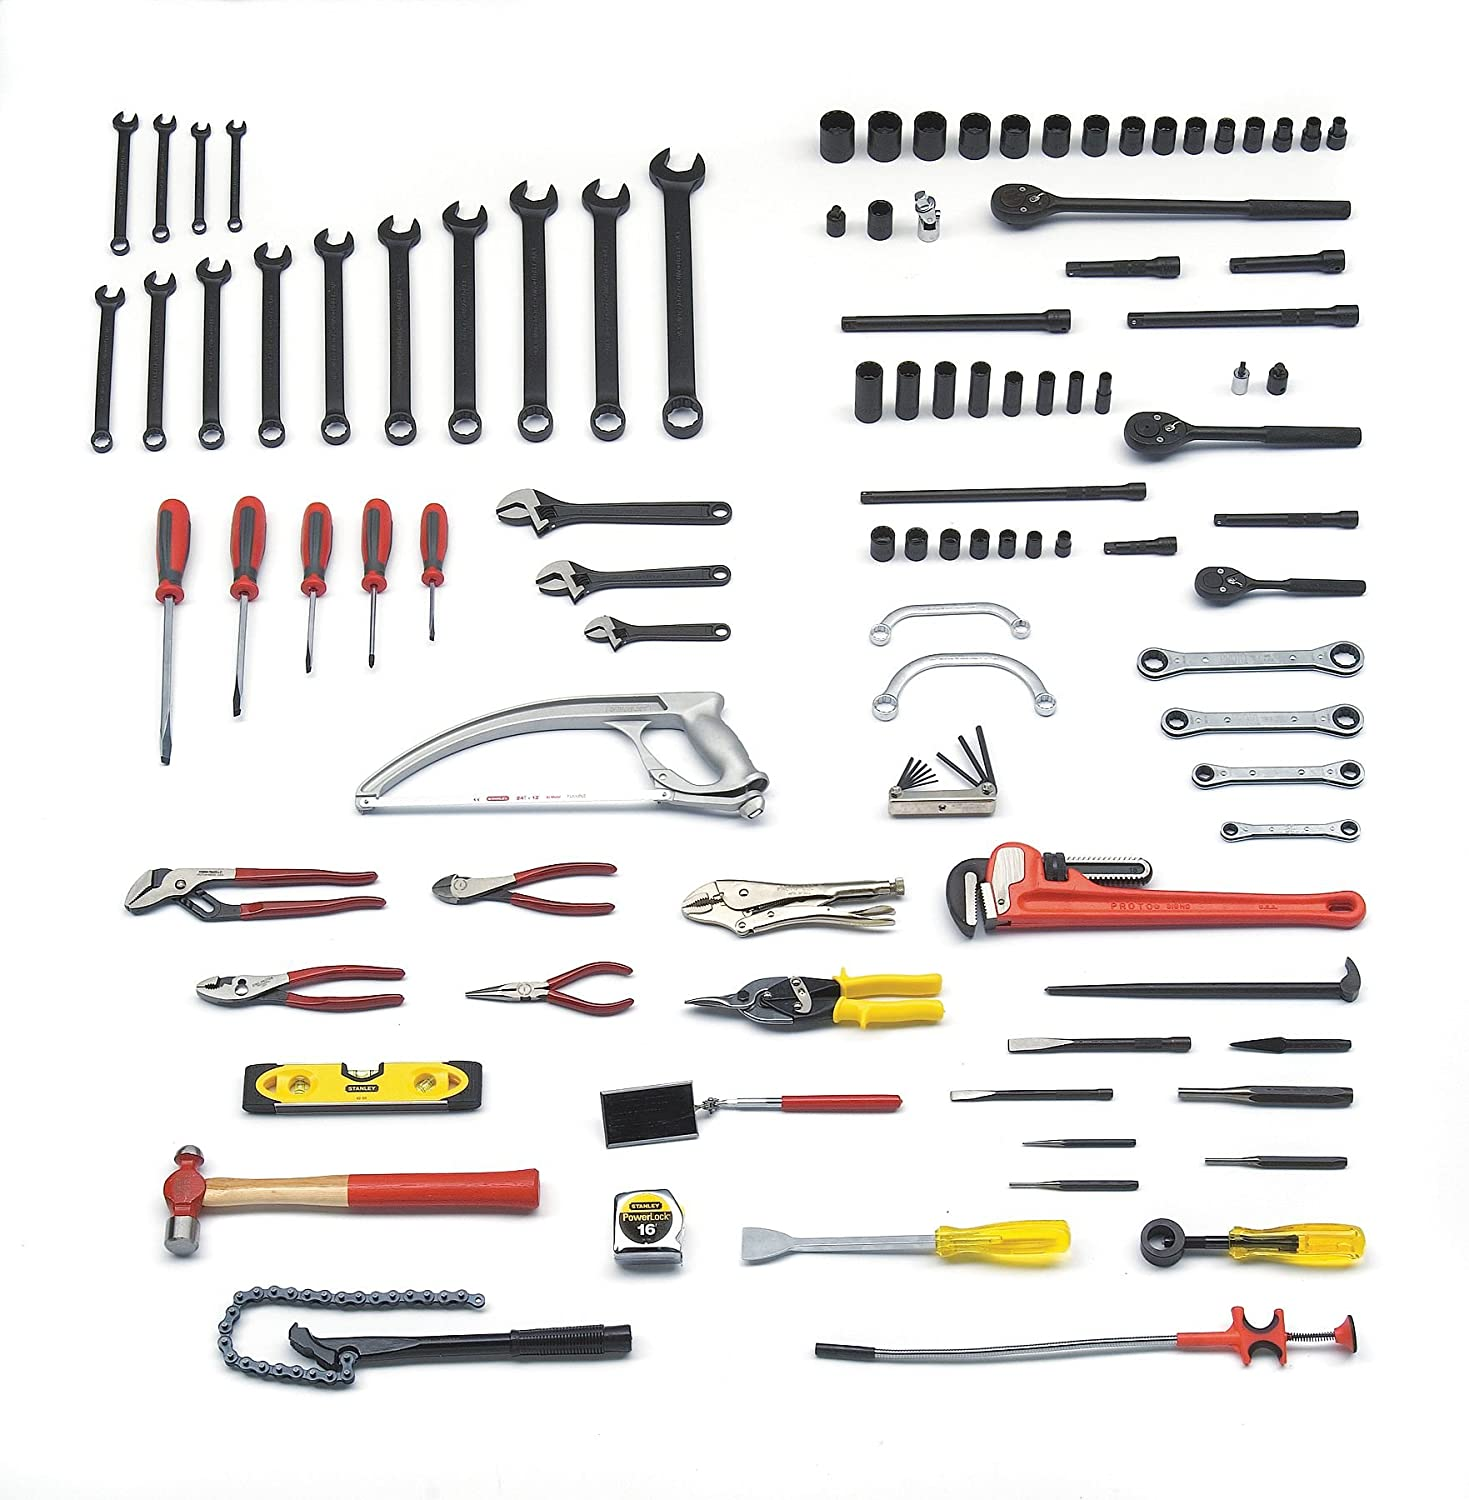 Pipe Fitter Tools >> Railroad Tool Set Pipe Fitter Sae Hand Tool Sets Amazon Com